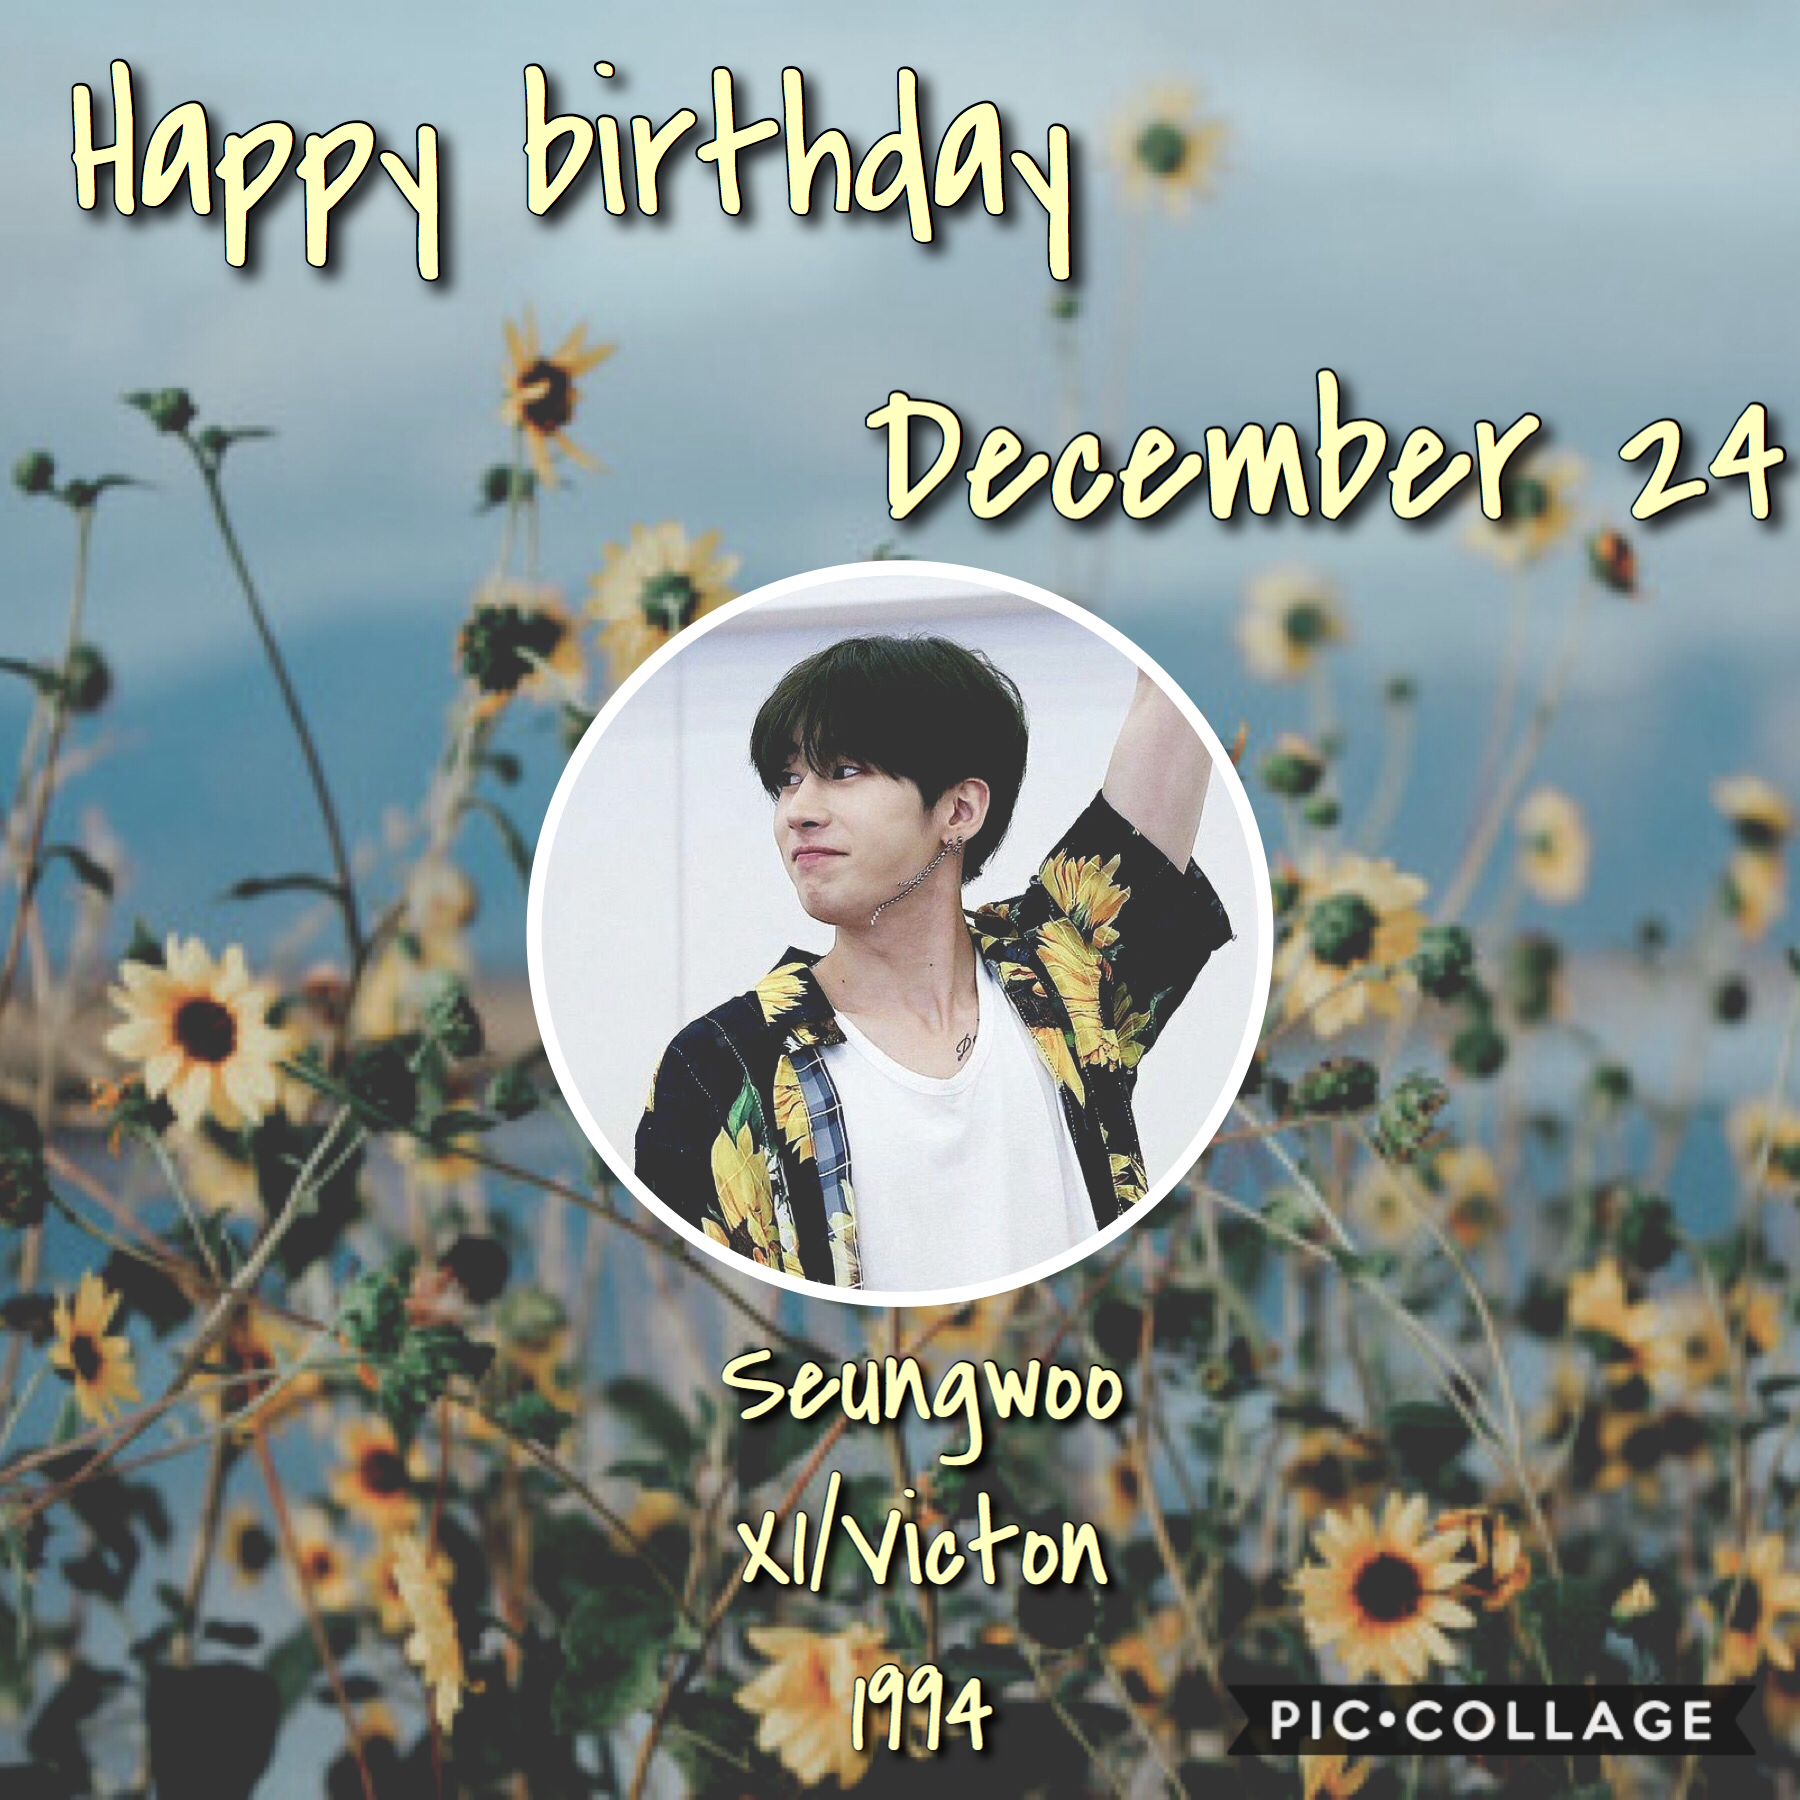 •🎈❄️• Happy birthday Seungwoo! He's so talented and deserves to be in his spot in X1❤️  ⛄️❄️~Whoop~❄️⛄️